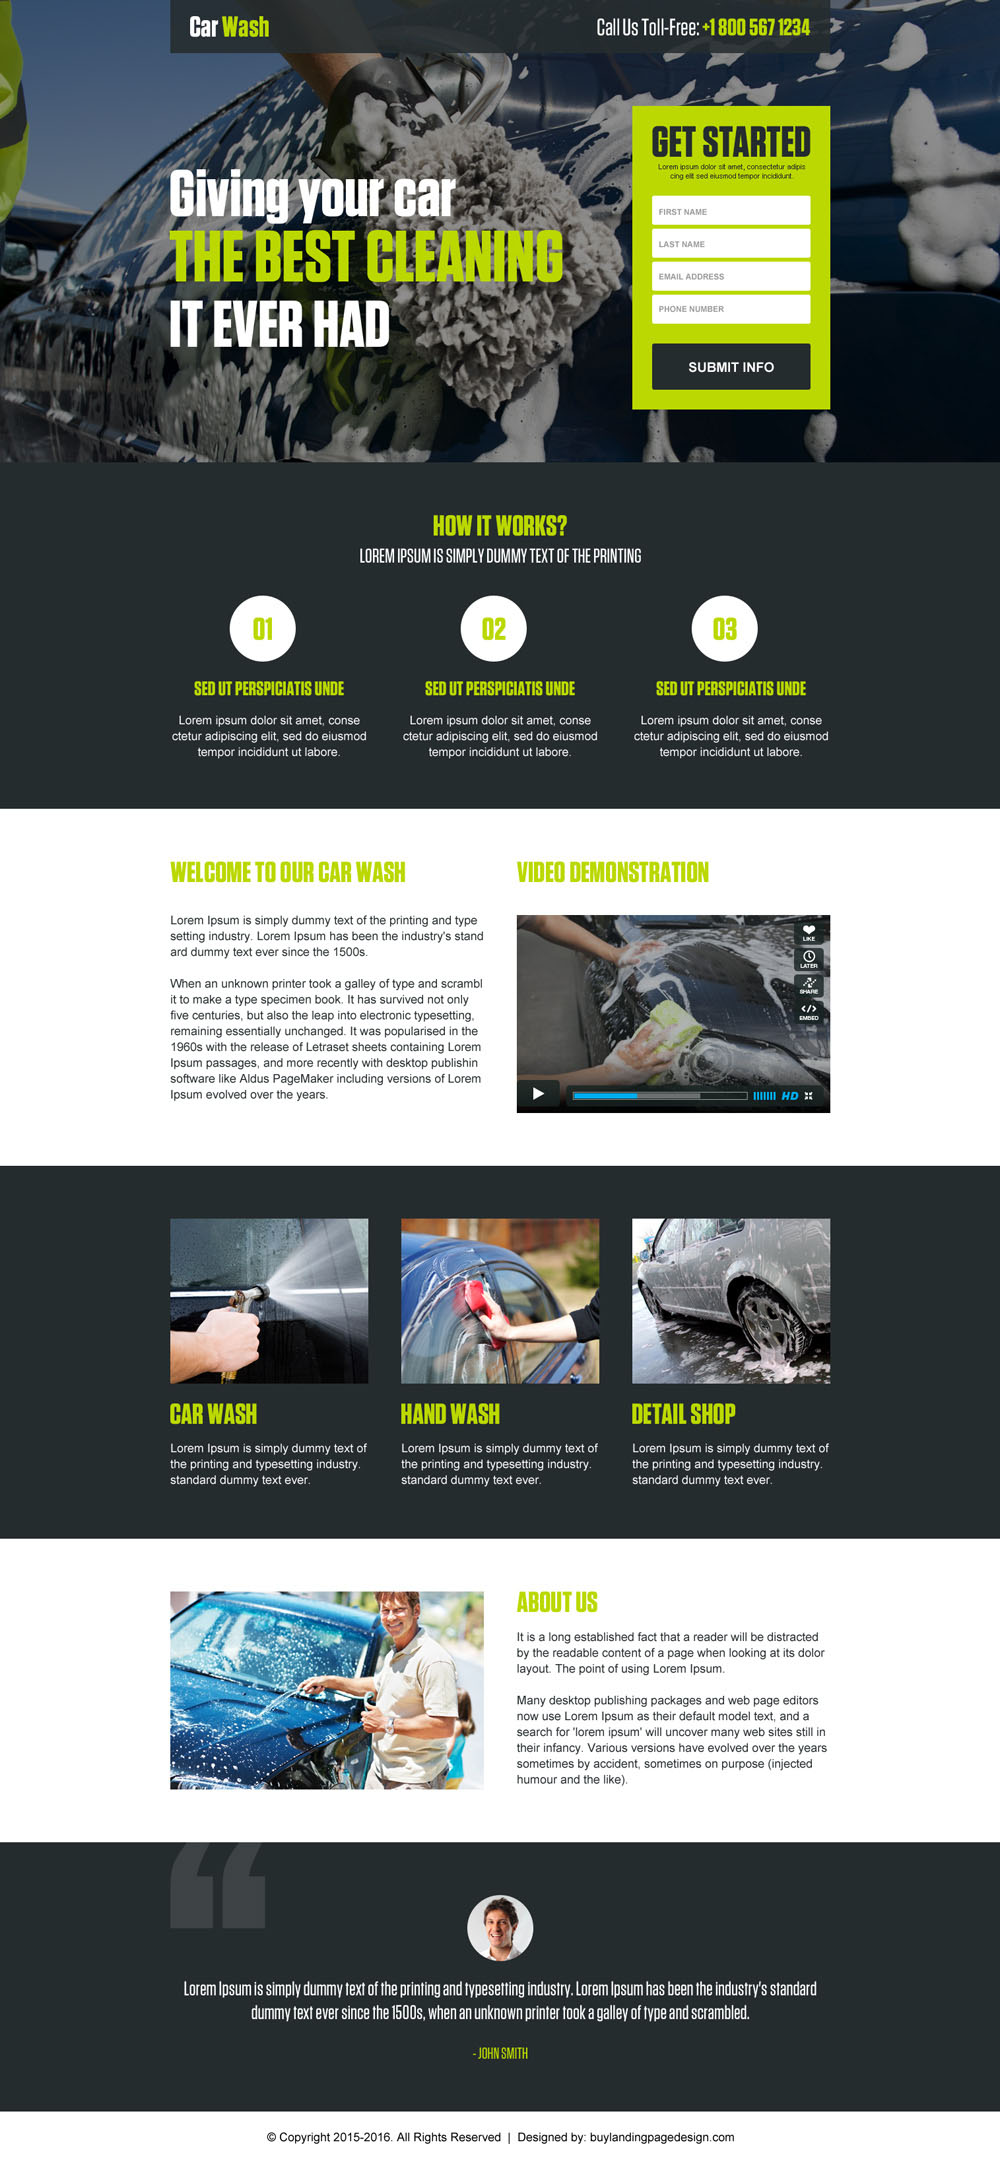 best-car-wash-service-lead-generation-responsive-landing-page-design-001